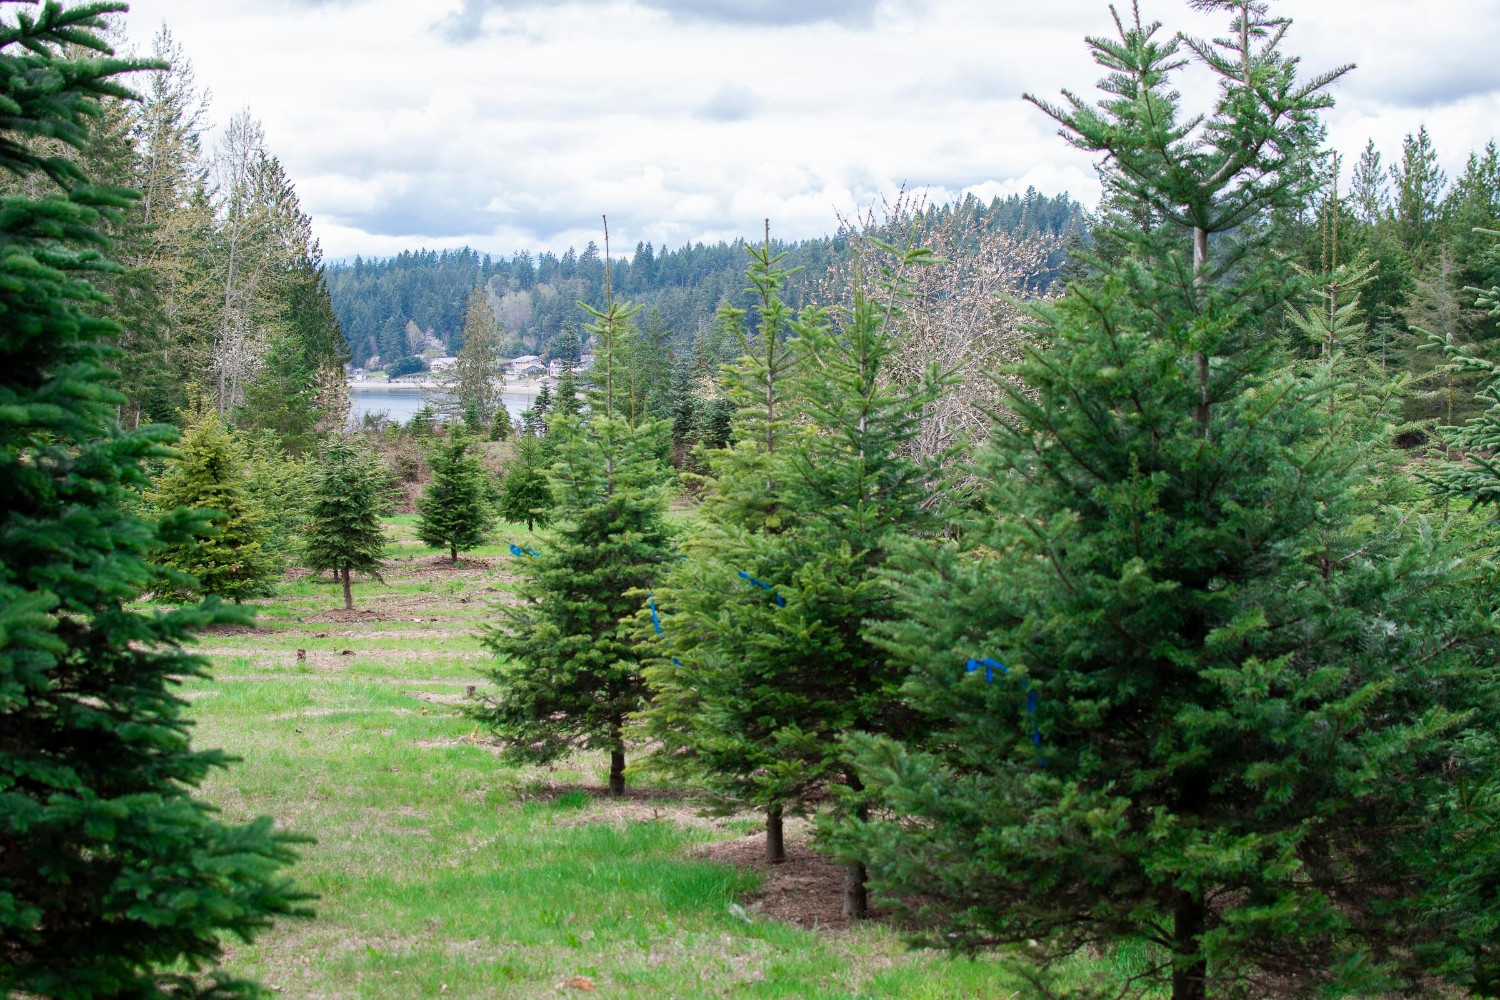 Ucut Christmas Trees 2020 U Cut Farms and Awesome Lots: Where to Get a Christmas Tree in